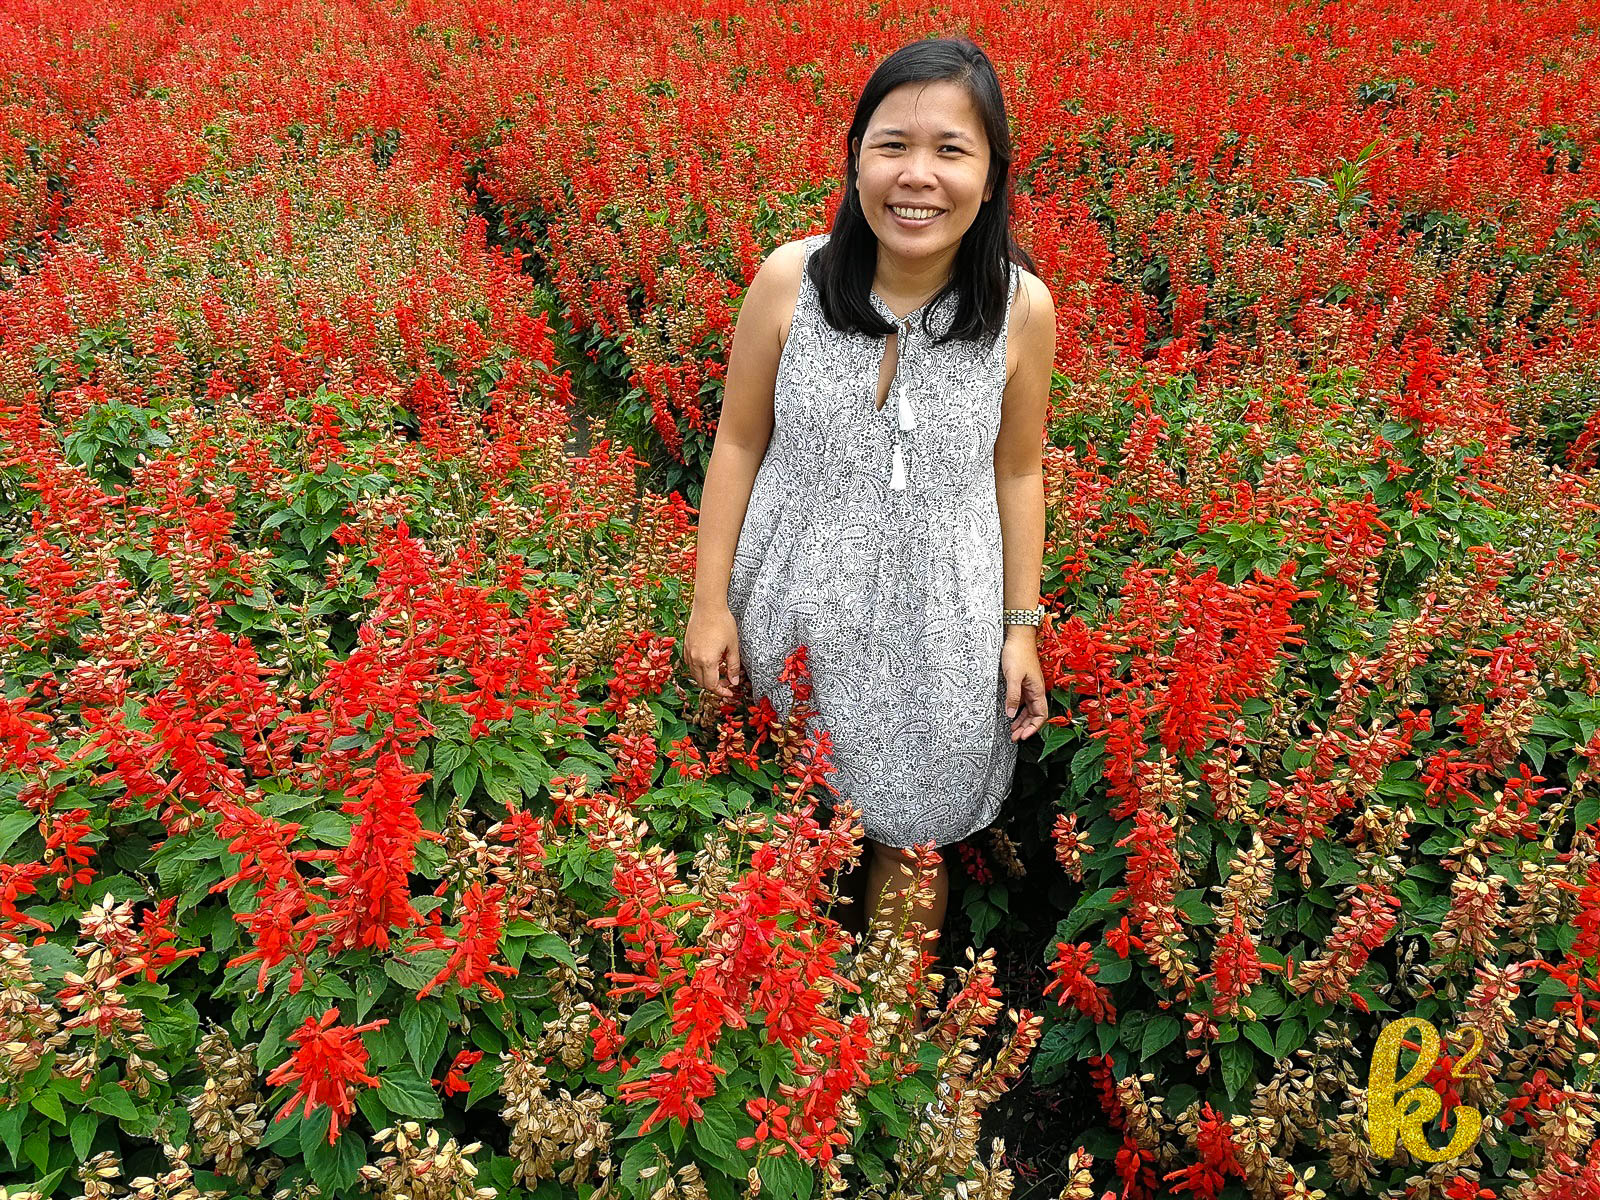 taiwan, travel, places to visit in taiwan, taiwan tourism, taiwan travel, houli, zhong she flower garden,